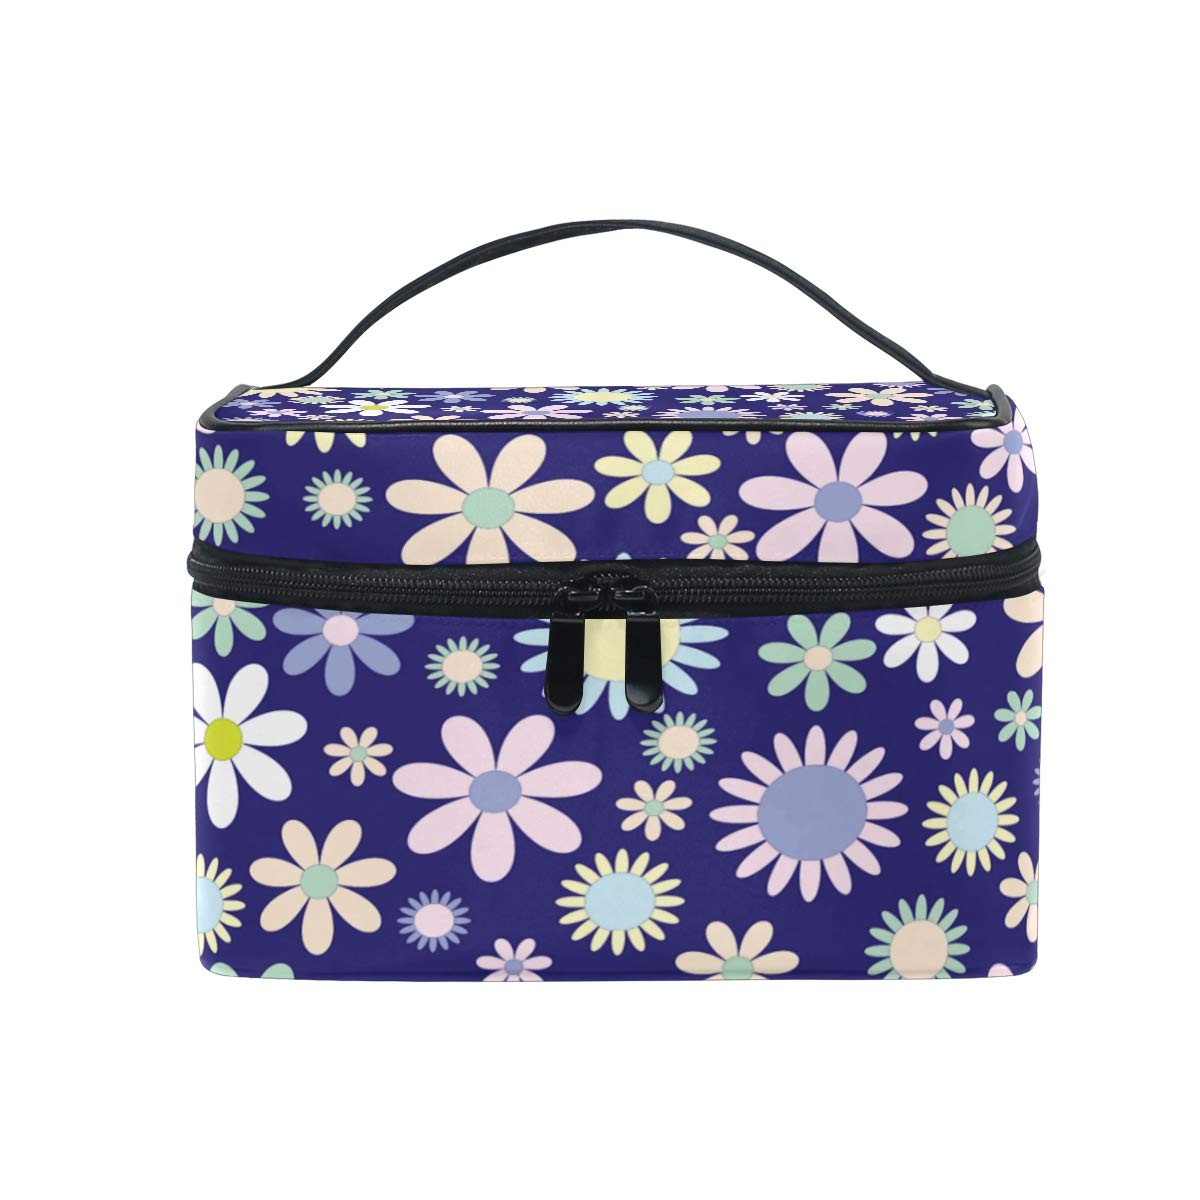 Travel Cosmetic Bag Daisy Flower Blue Toiletry Makeup Bag Pouch Train Tote Case Organizer Storage For Women Girls